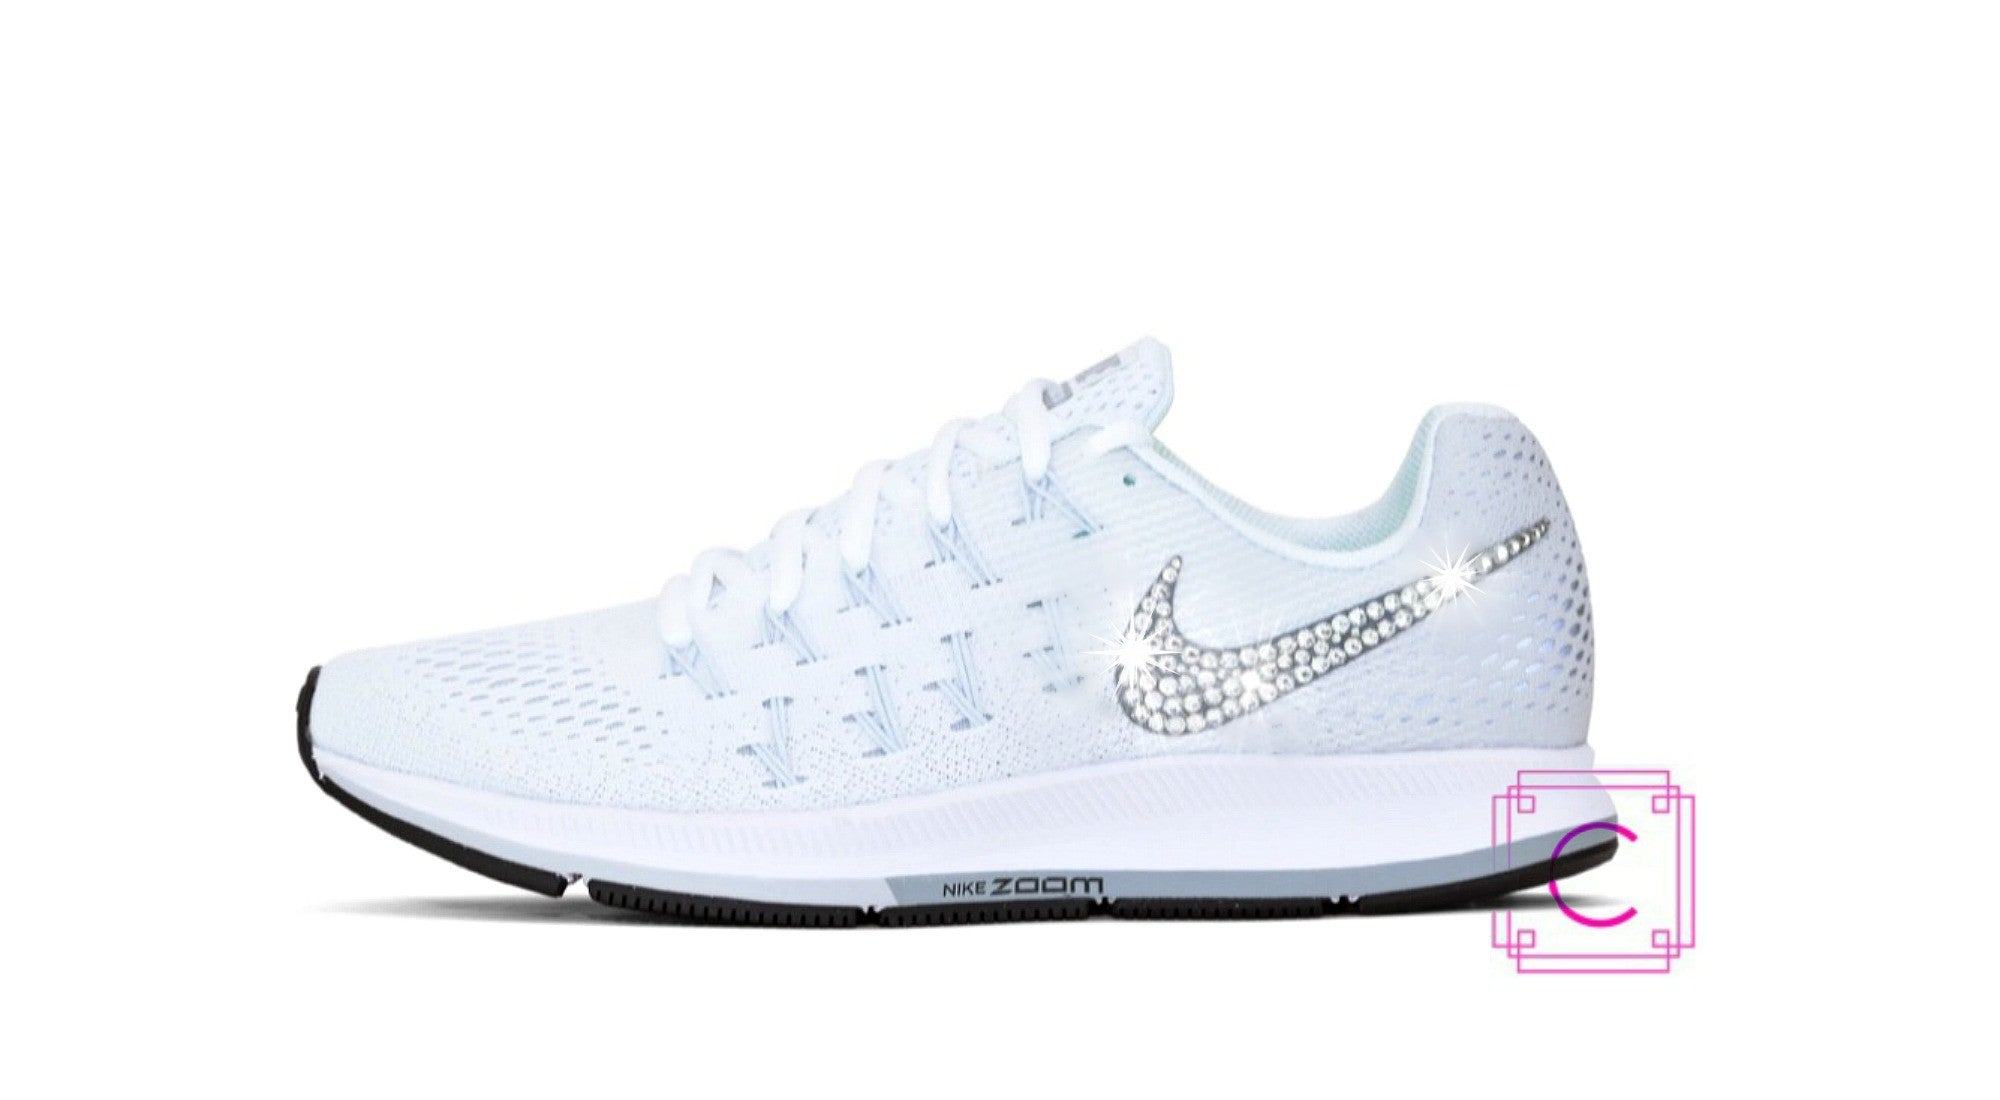 ac107e8aa1c2 Women s Nike Zoom Pegasus 33 in White Pure Platinum Black Cool Grey  w SWAROVSKI® Crystal details